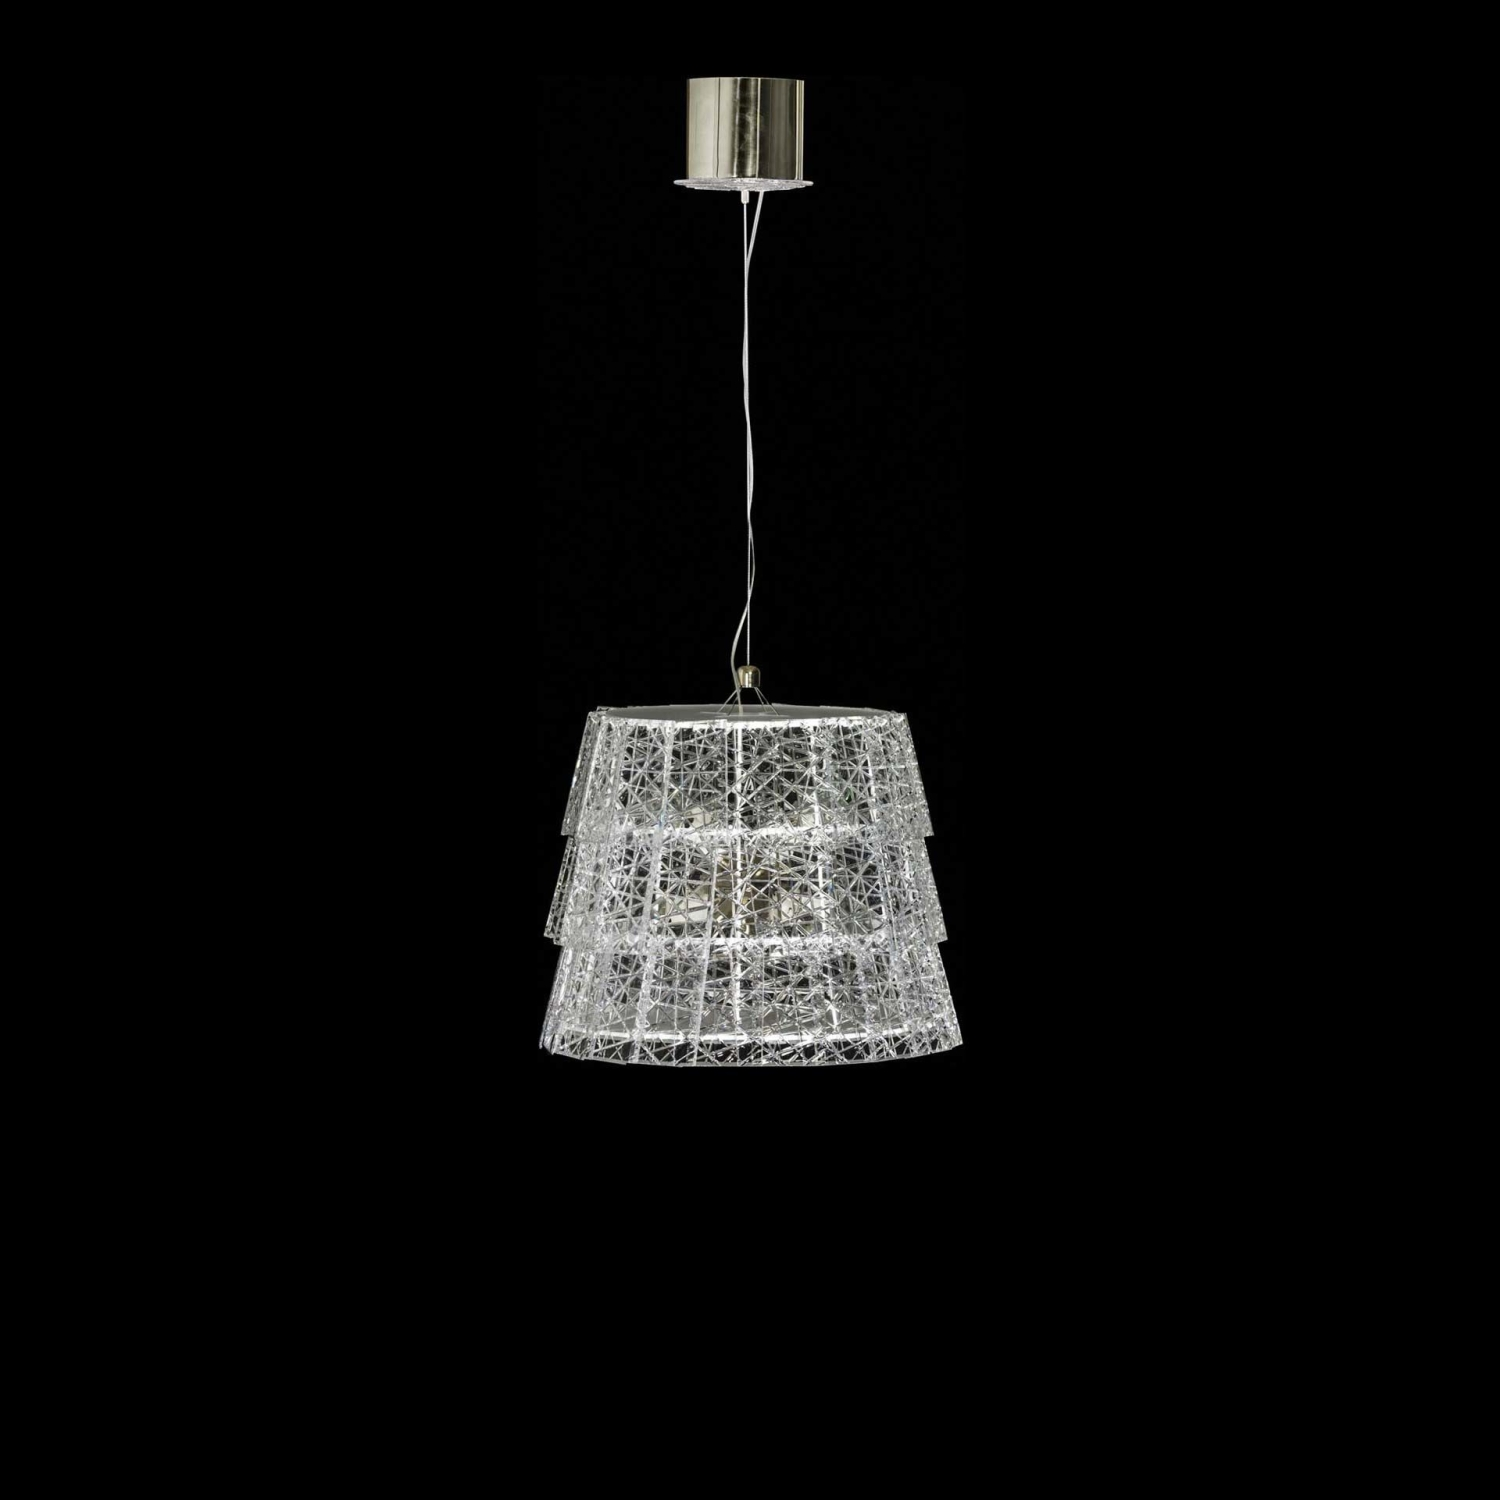 Chandelier baccarat tuile de cristal 2802827 for Chandelier centre de table